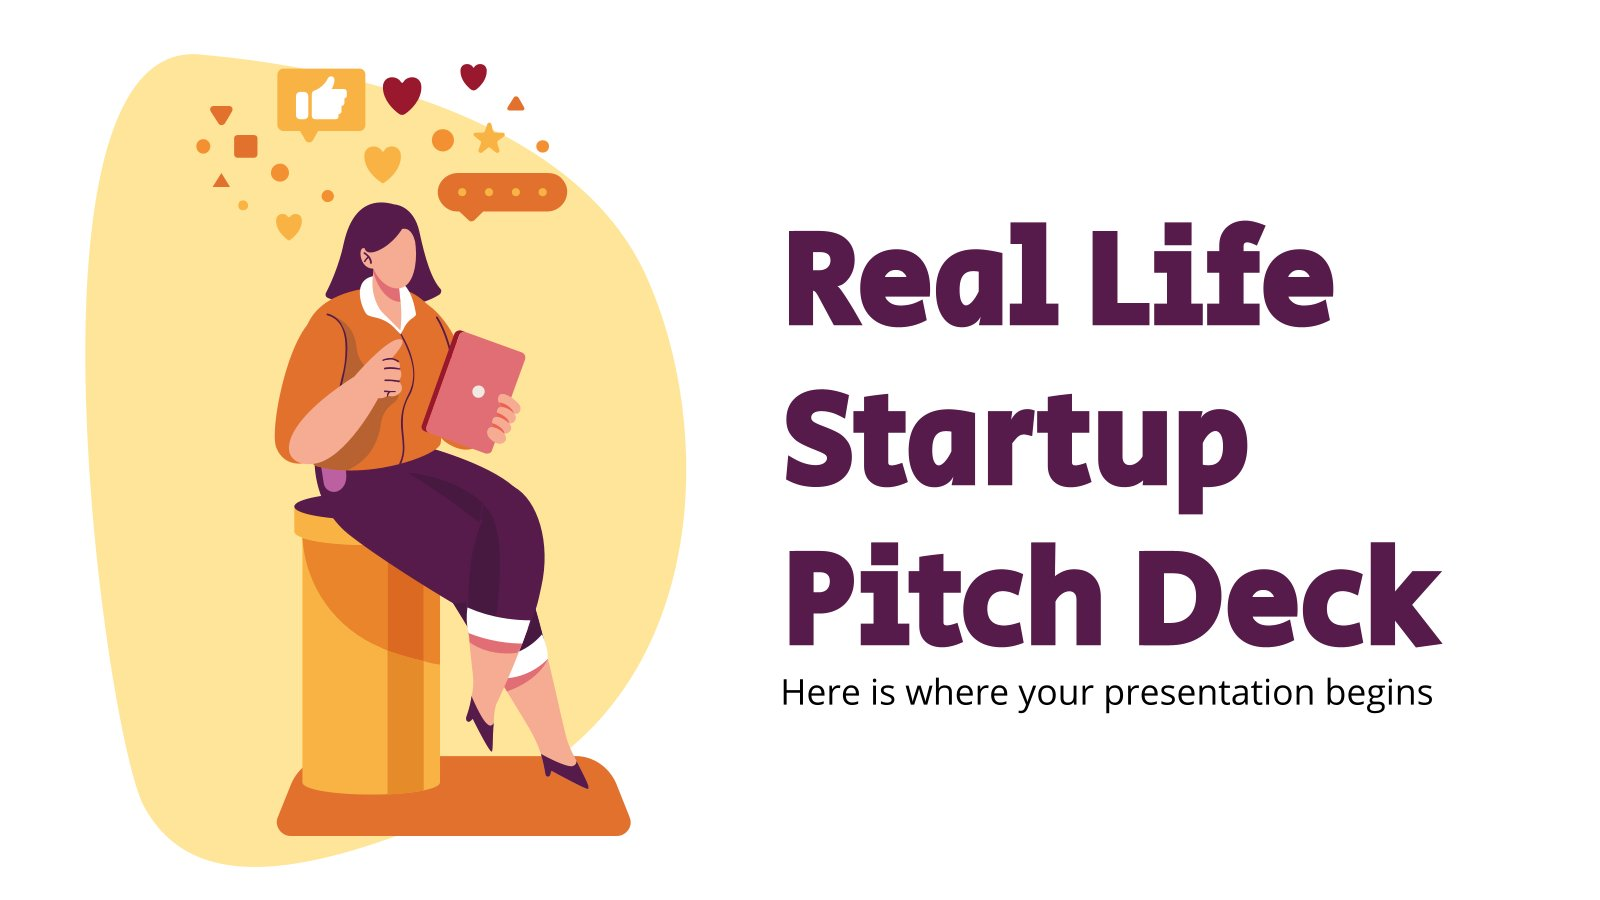 Real Life Startup Pitch Deck presentation template